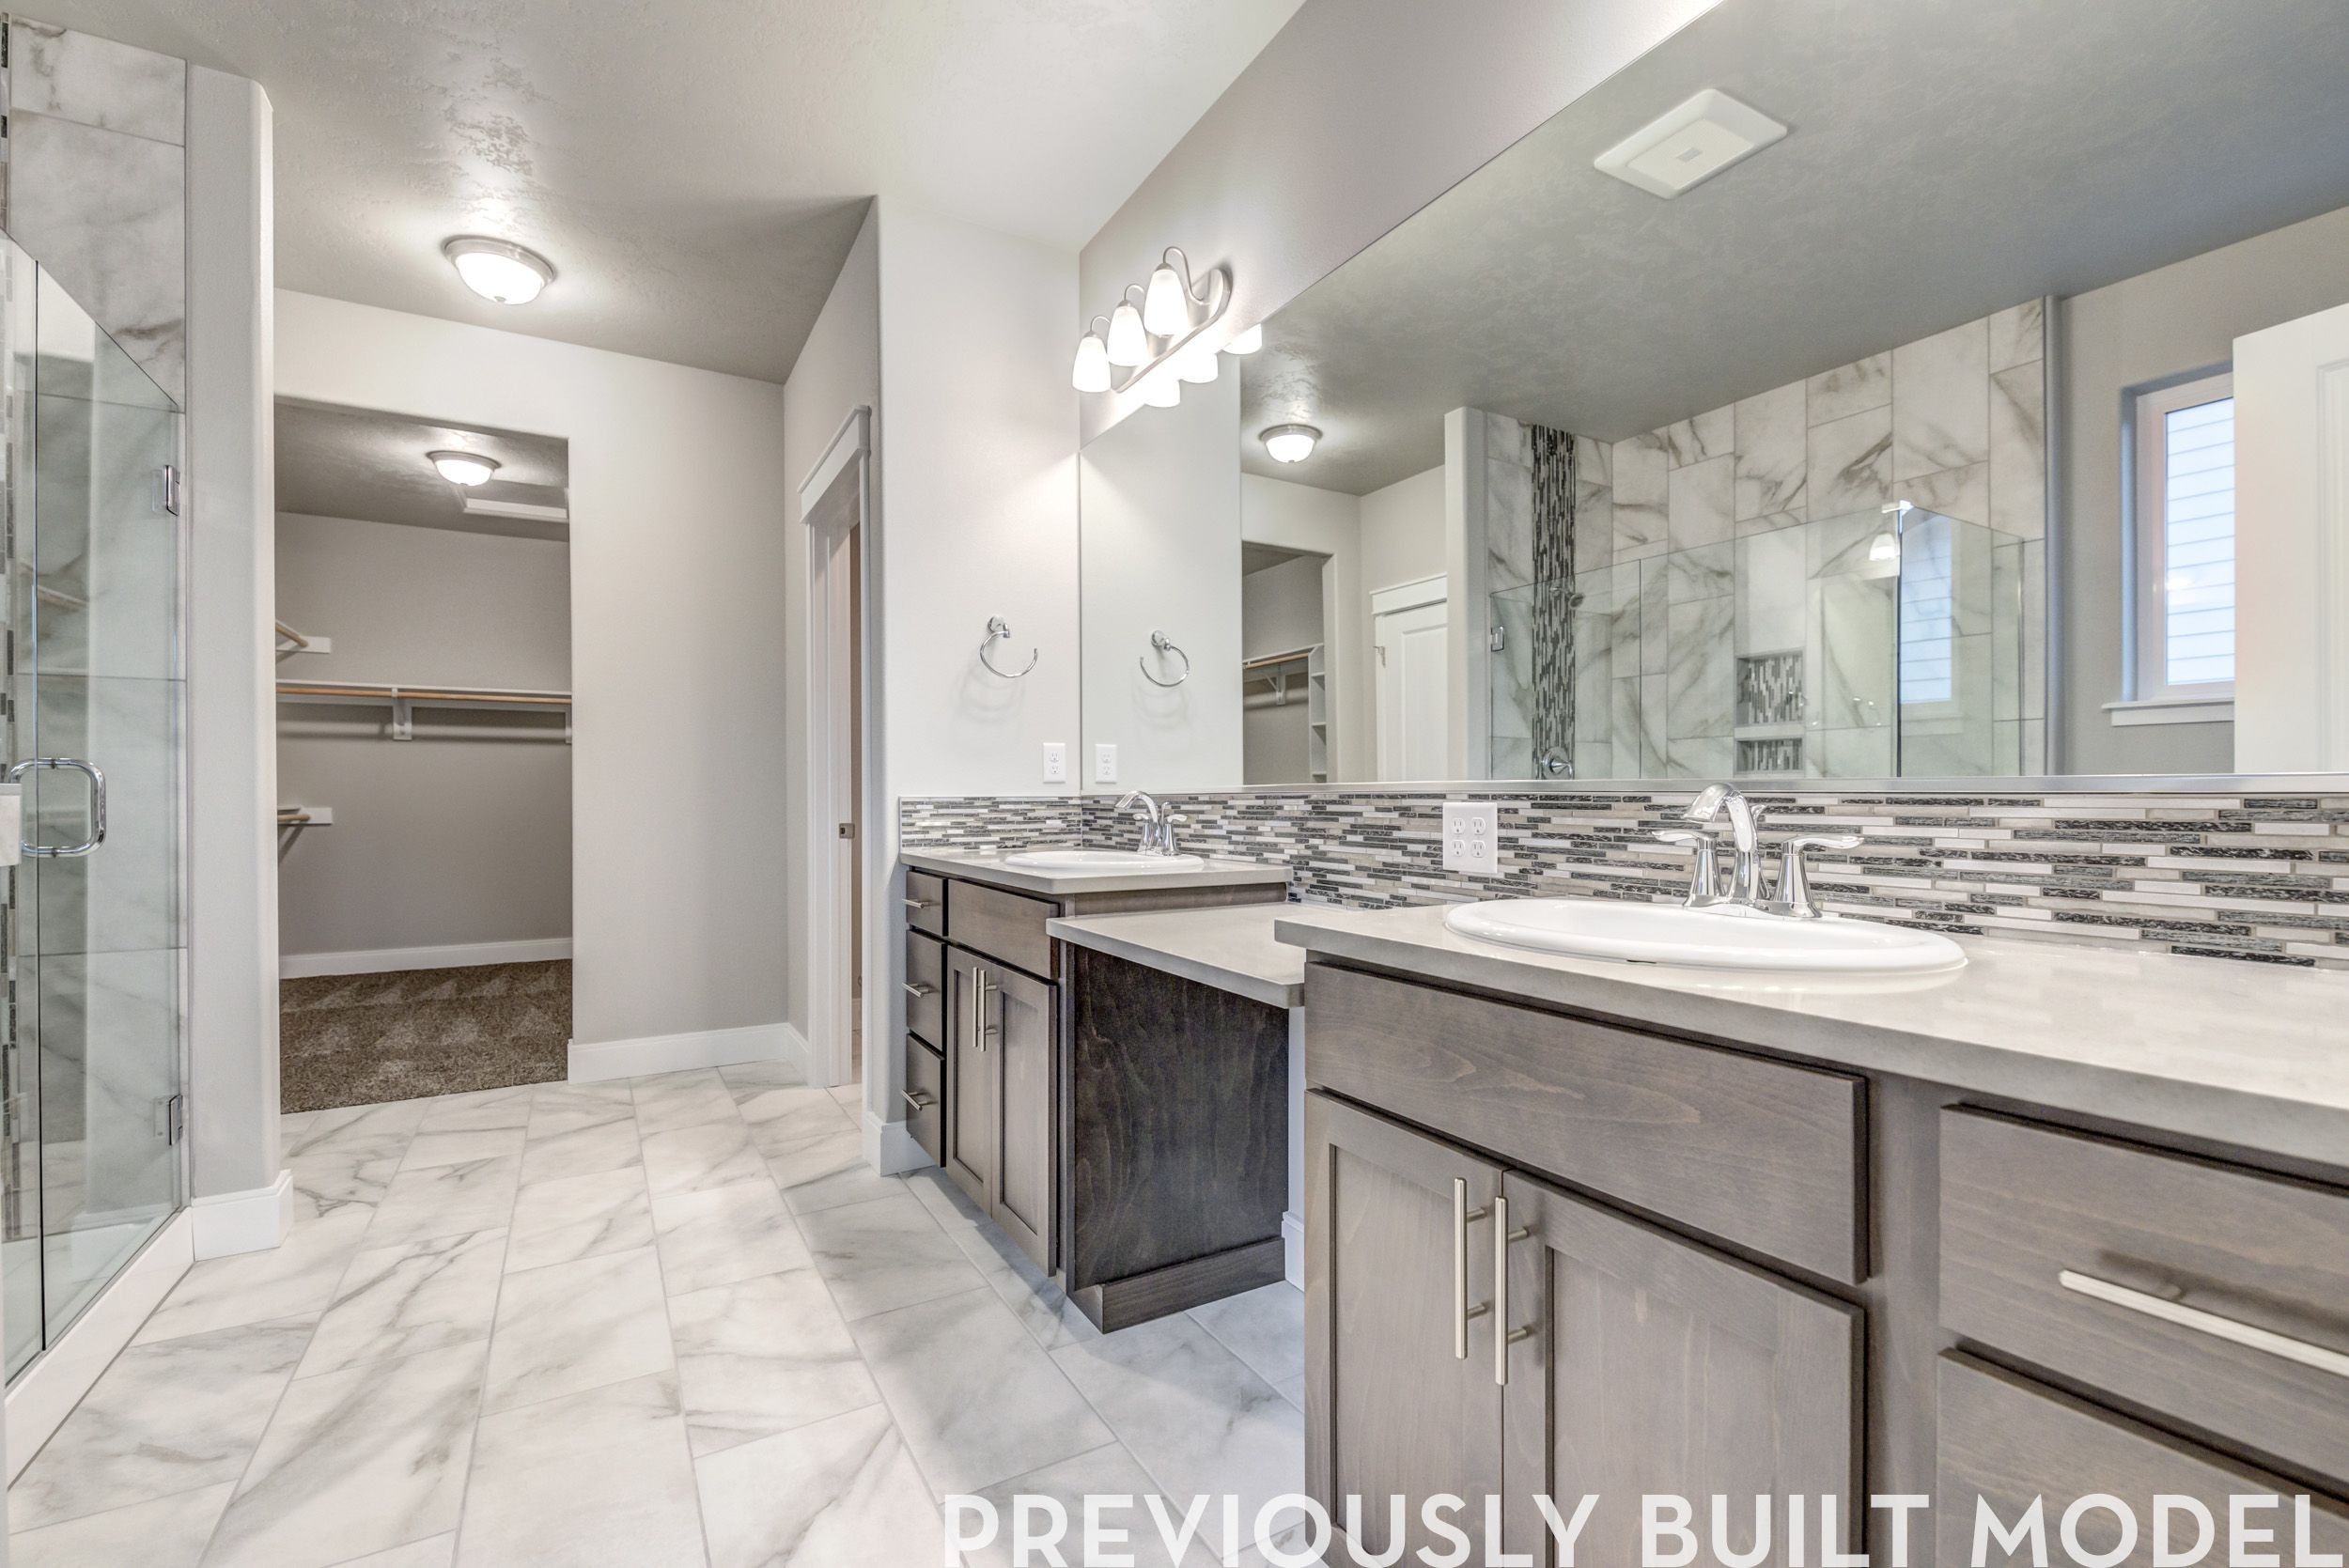 Bathroom featured in The Tully By RYN Built Homes in Richland, WA